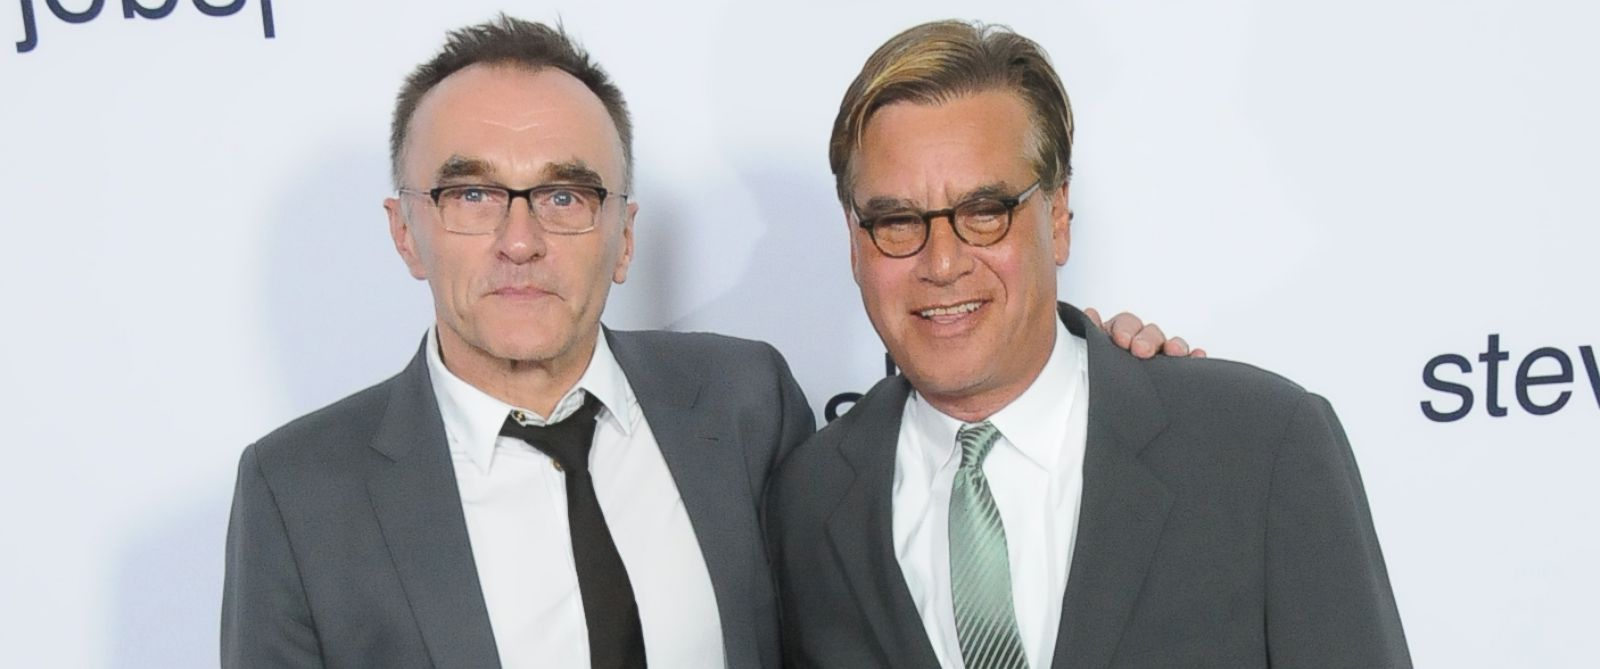 PHOTO: (L-R) Director Danny Boyle and writer Aaron Sorkin arrive at the screening of Universal Pictures Steve Jobs at the Samuel Goldwyn Theater on Oct. 8, 2015 in Los Angeles, Calif.